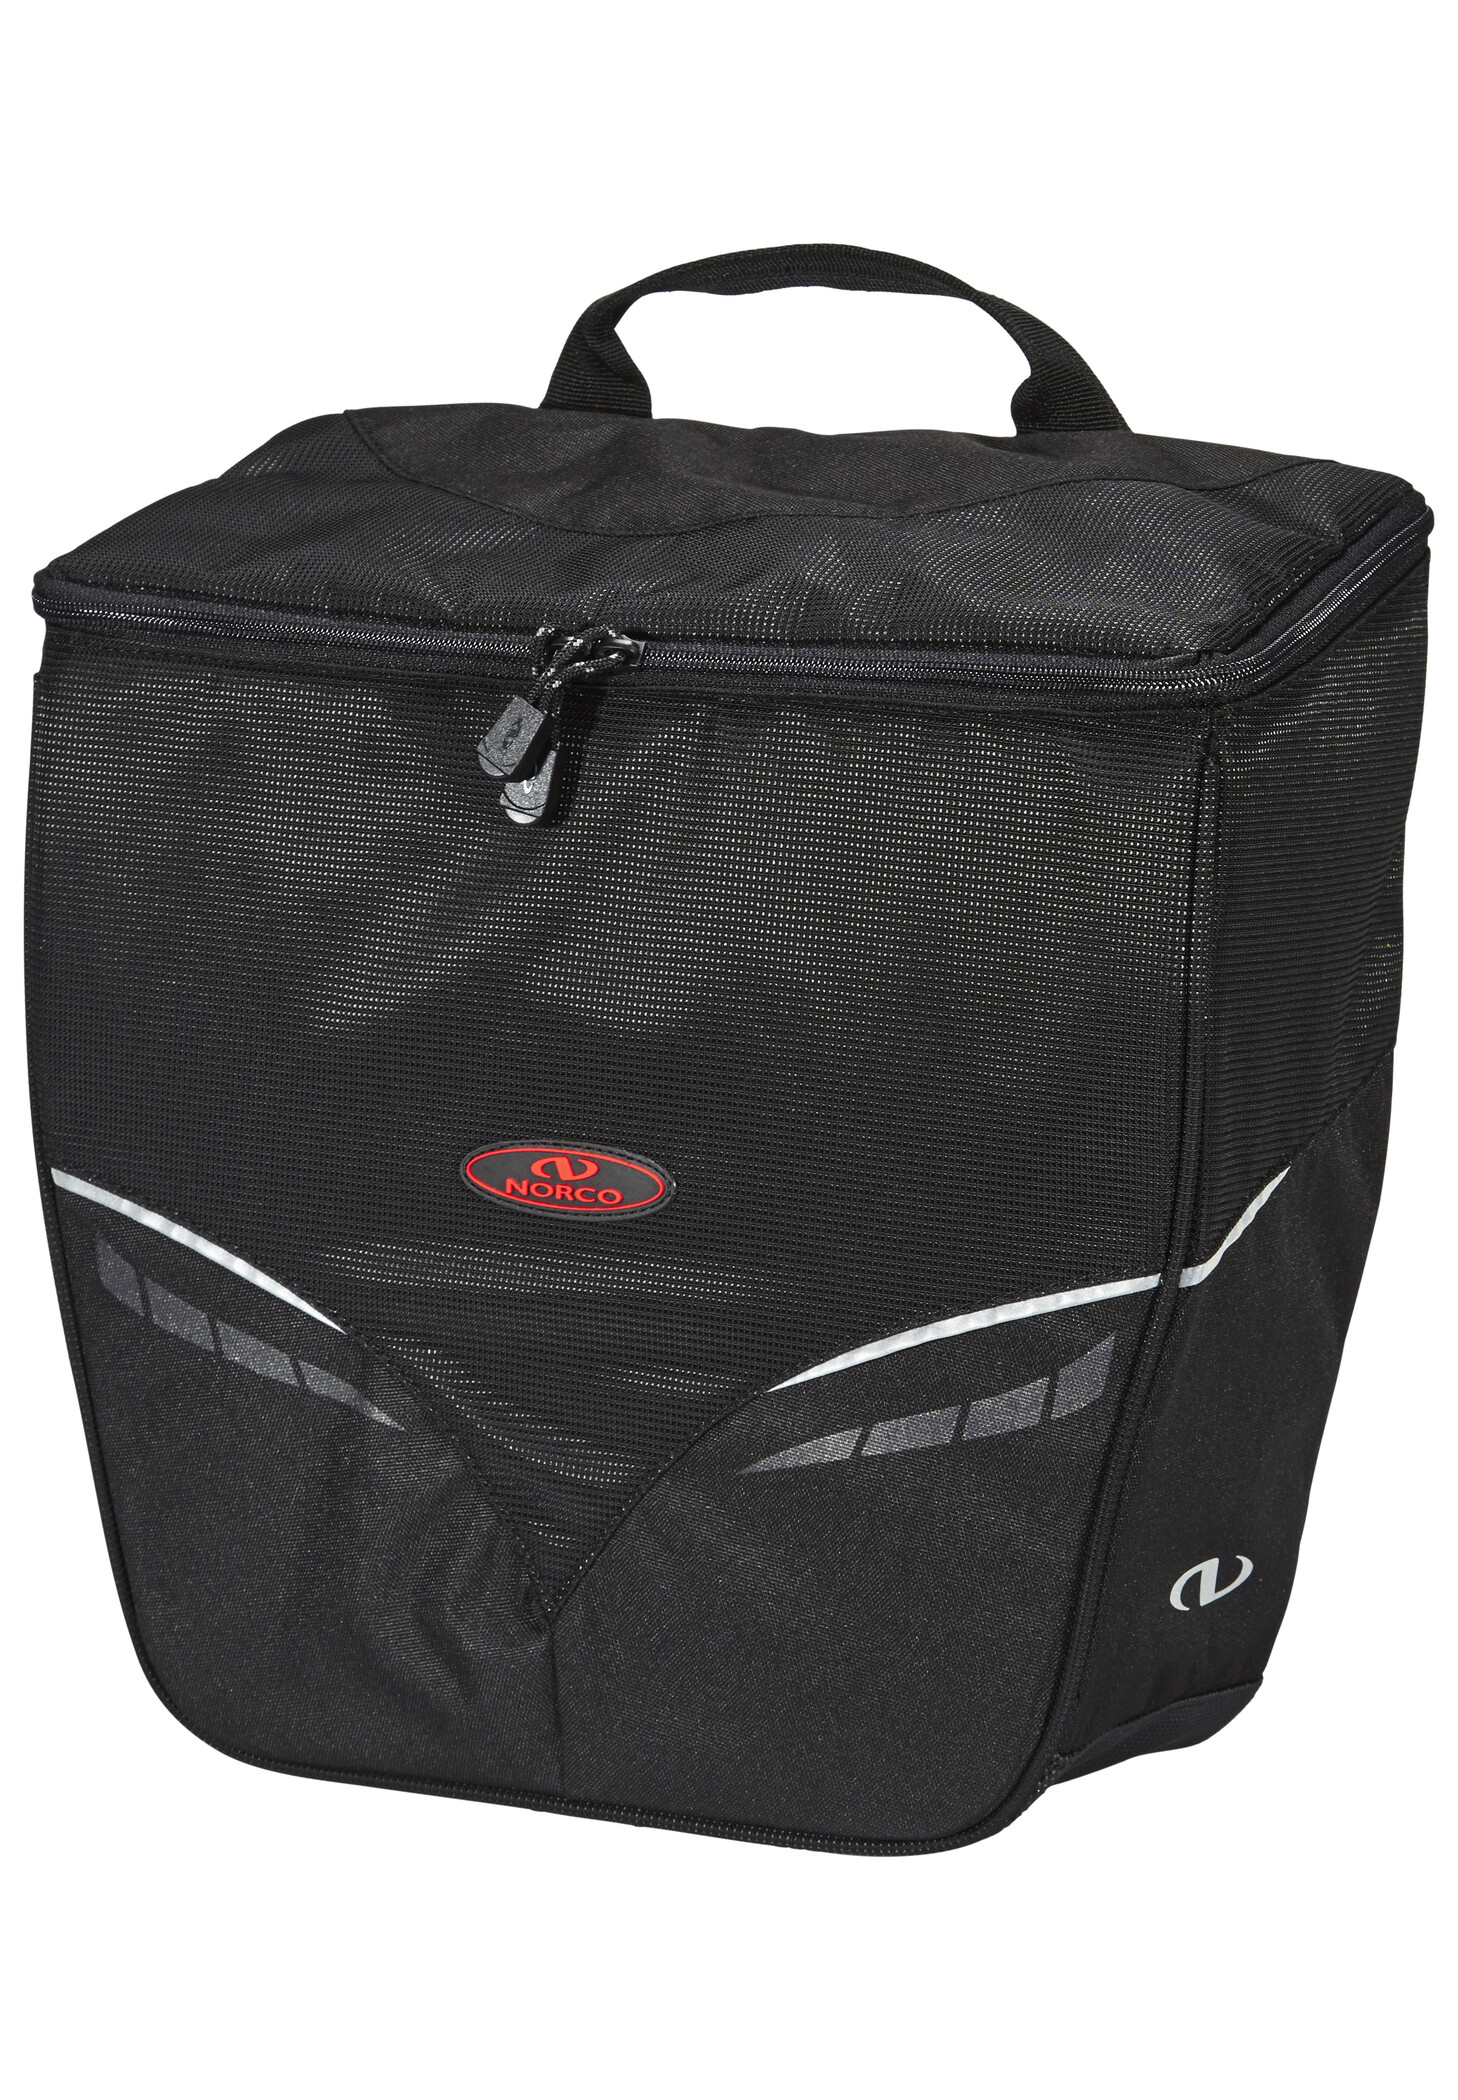 Norco Canmore City Cykeltaske, black (2019) | Rack bags